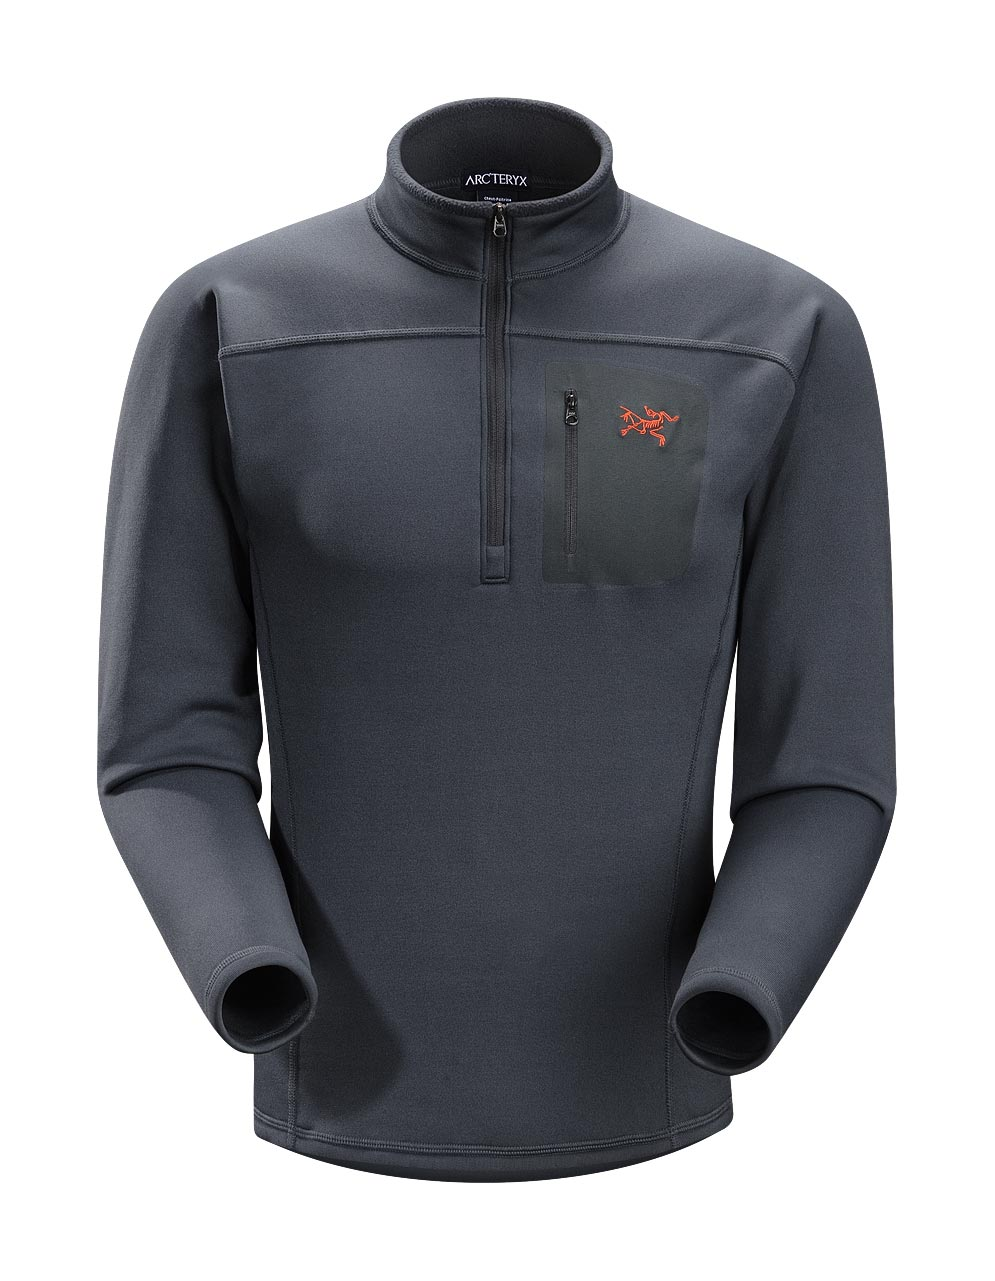 Arcteryx Nightshade Rho AR Top